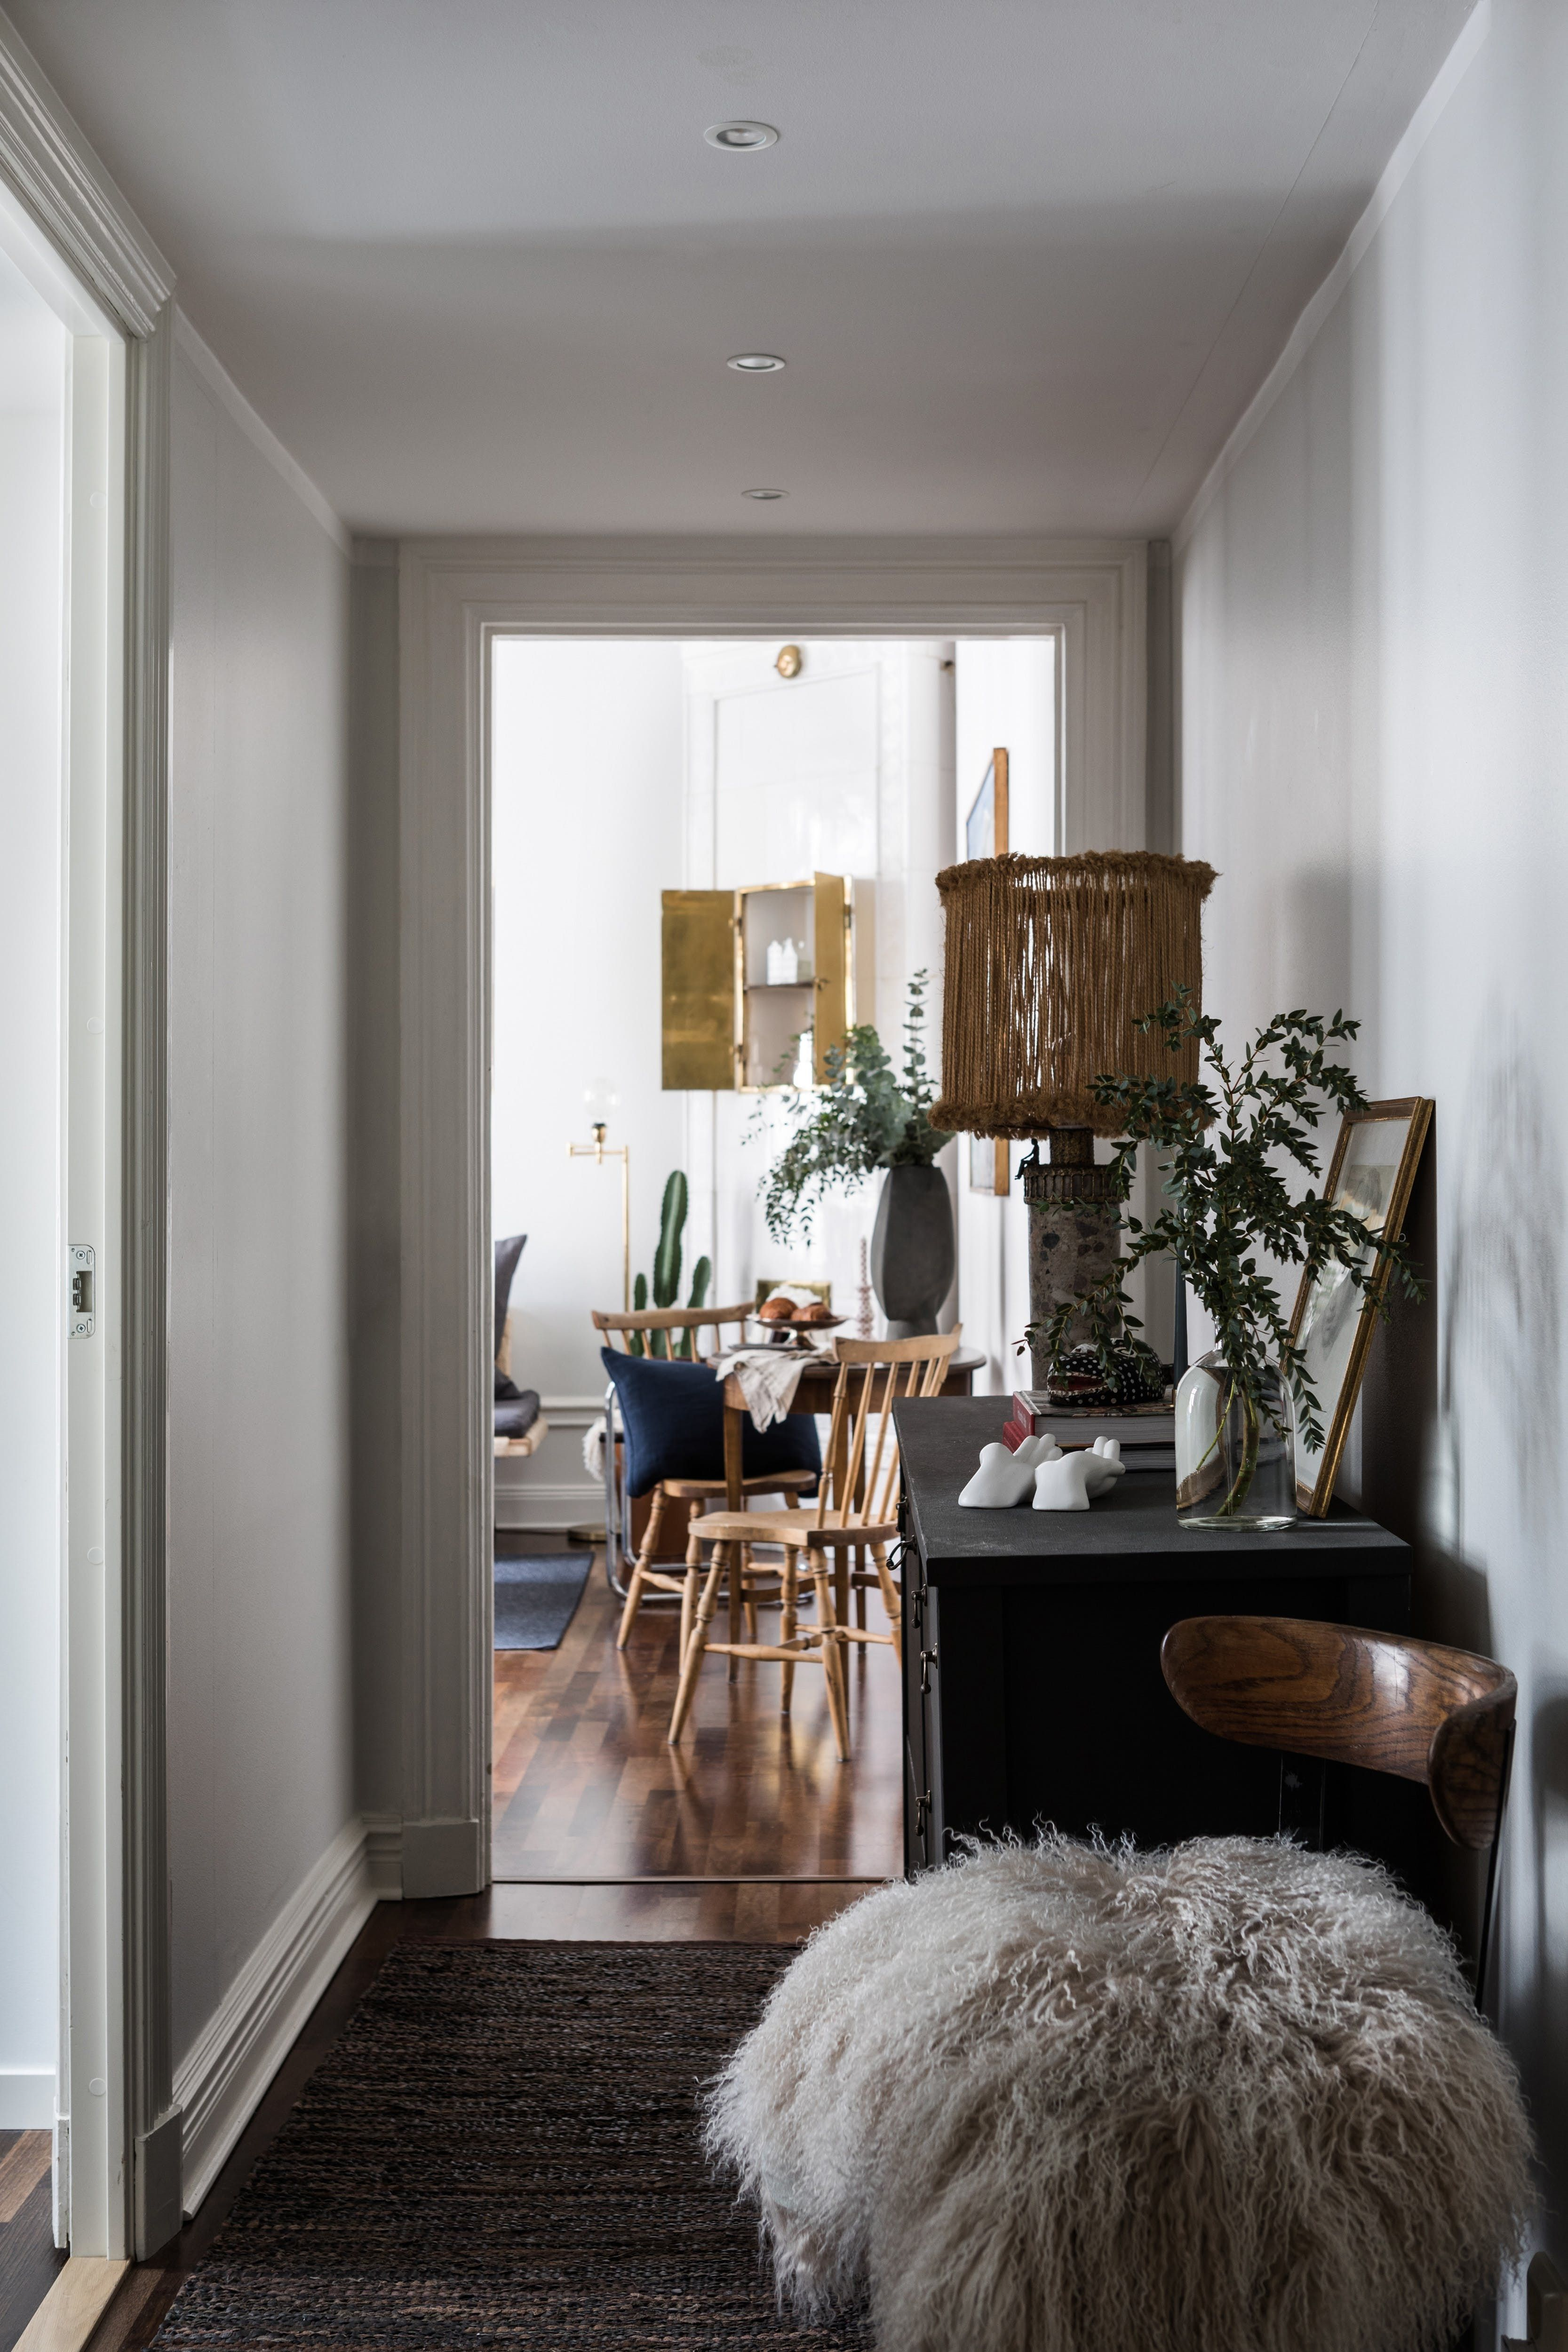 Moving The Kitchen And Opening Up A Wall In This Small Apartment Are Key Design